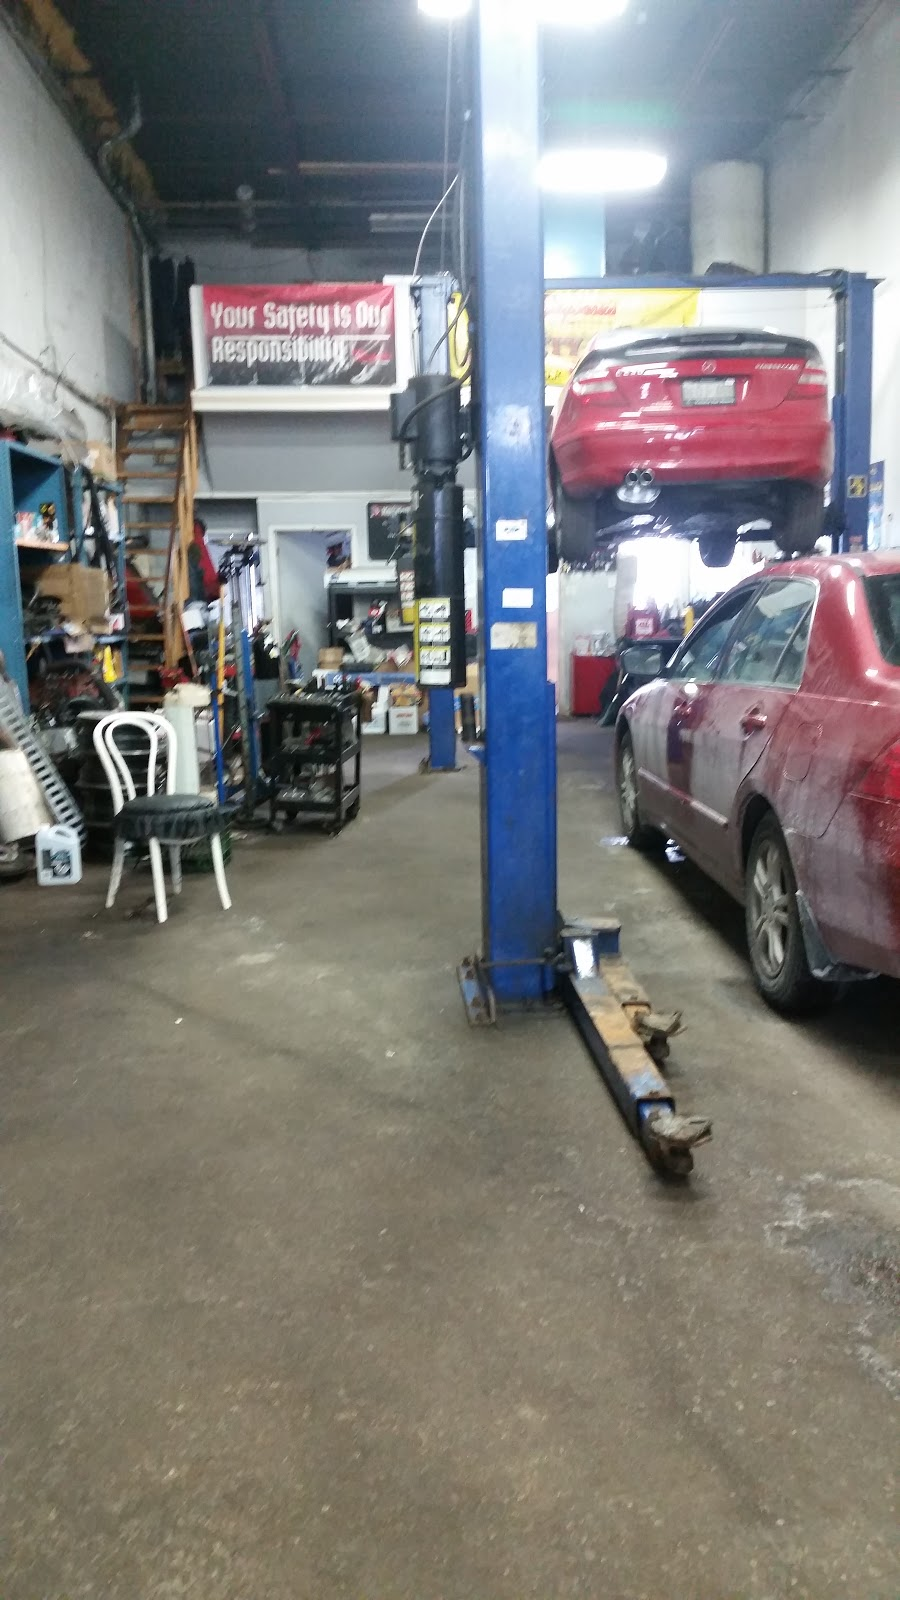 A 1 Truck & Auto Services | car repair | 6771 Columbus Rd, Mississauga, ON L5T 2J9, Canada | 9056702022 OR +1 905-670-2022